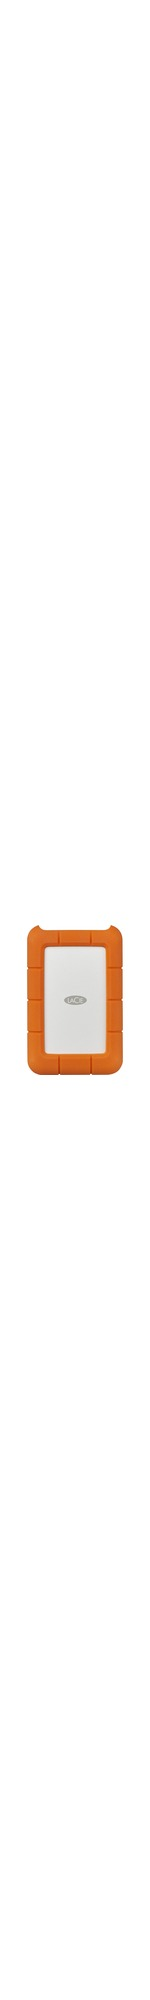 LaCie Rugged STFR4000800 4 TB Desktop Hard Drive - 2.5And#34; External - Orange - USB Type C